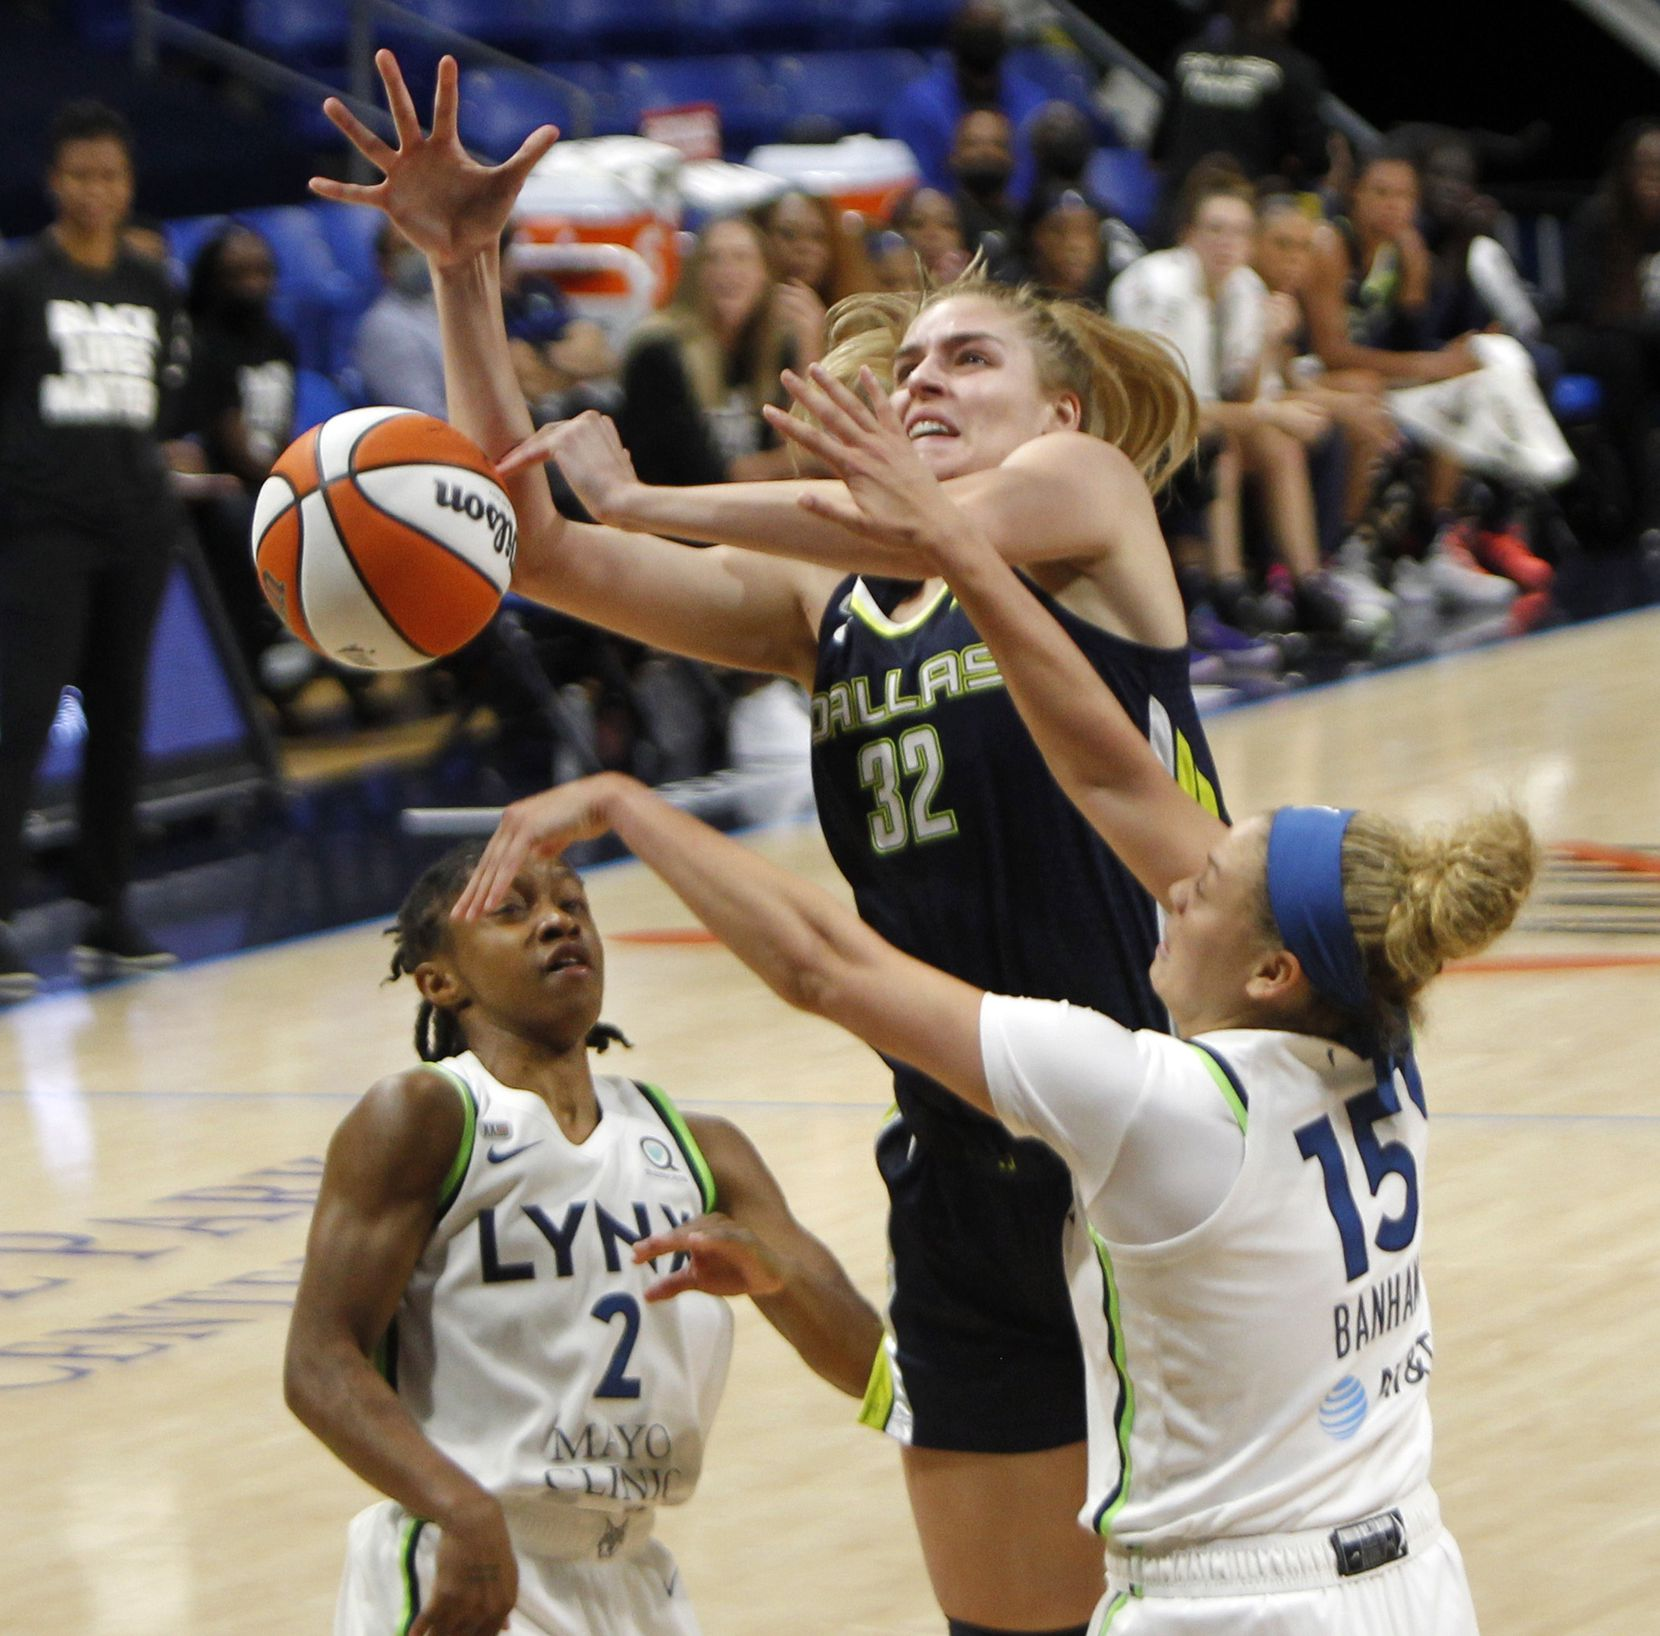 Dallas Wings center Bella Alarie (32) is fouled as she shoots against the defense of Minnesota Lynx guards Rachel Banham (15) and Crystal Dangerfield (2) during 3rd quarter action. The two teams played their WNBA game at College Park Center on the campus of the University of Arlington on June 17, 2021(Steve Hamm/ Special Contributor)